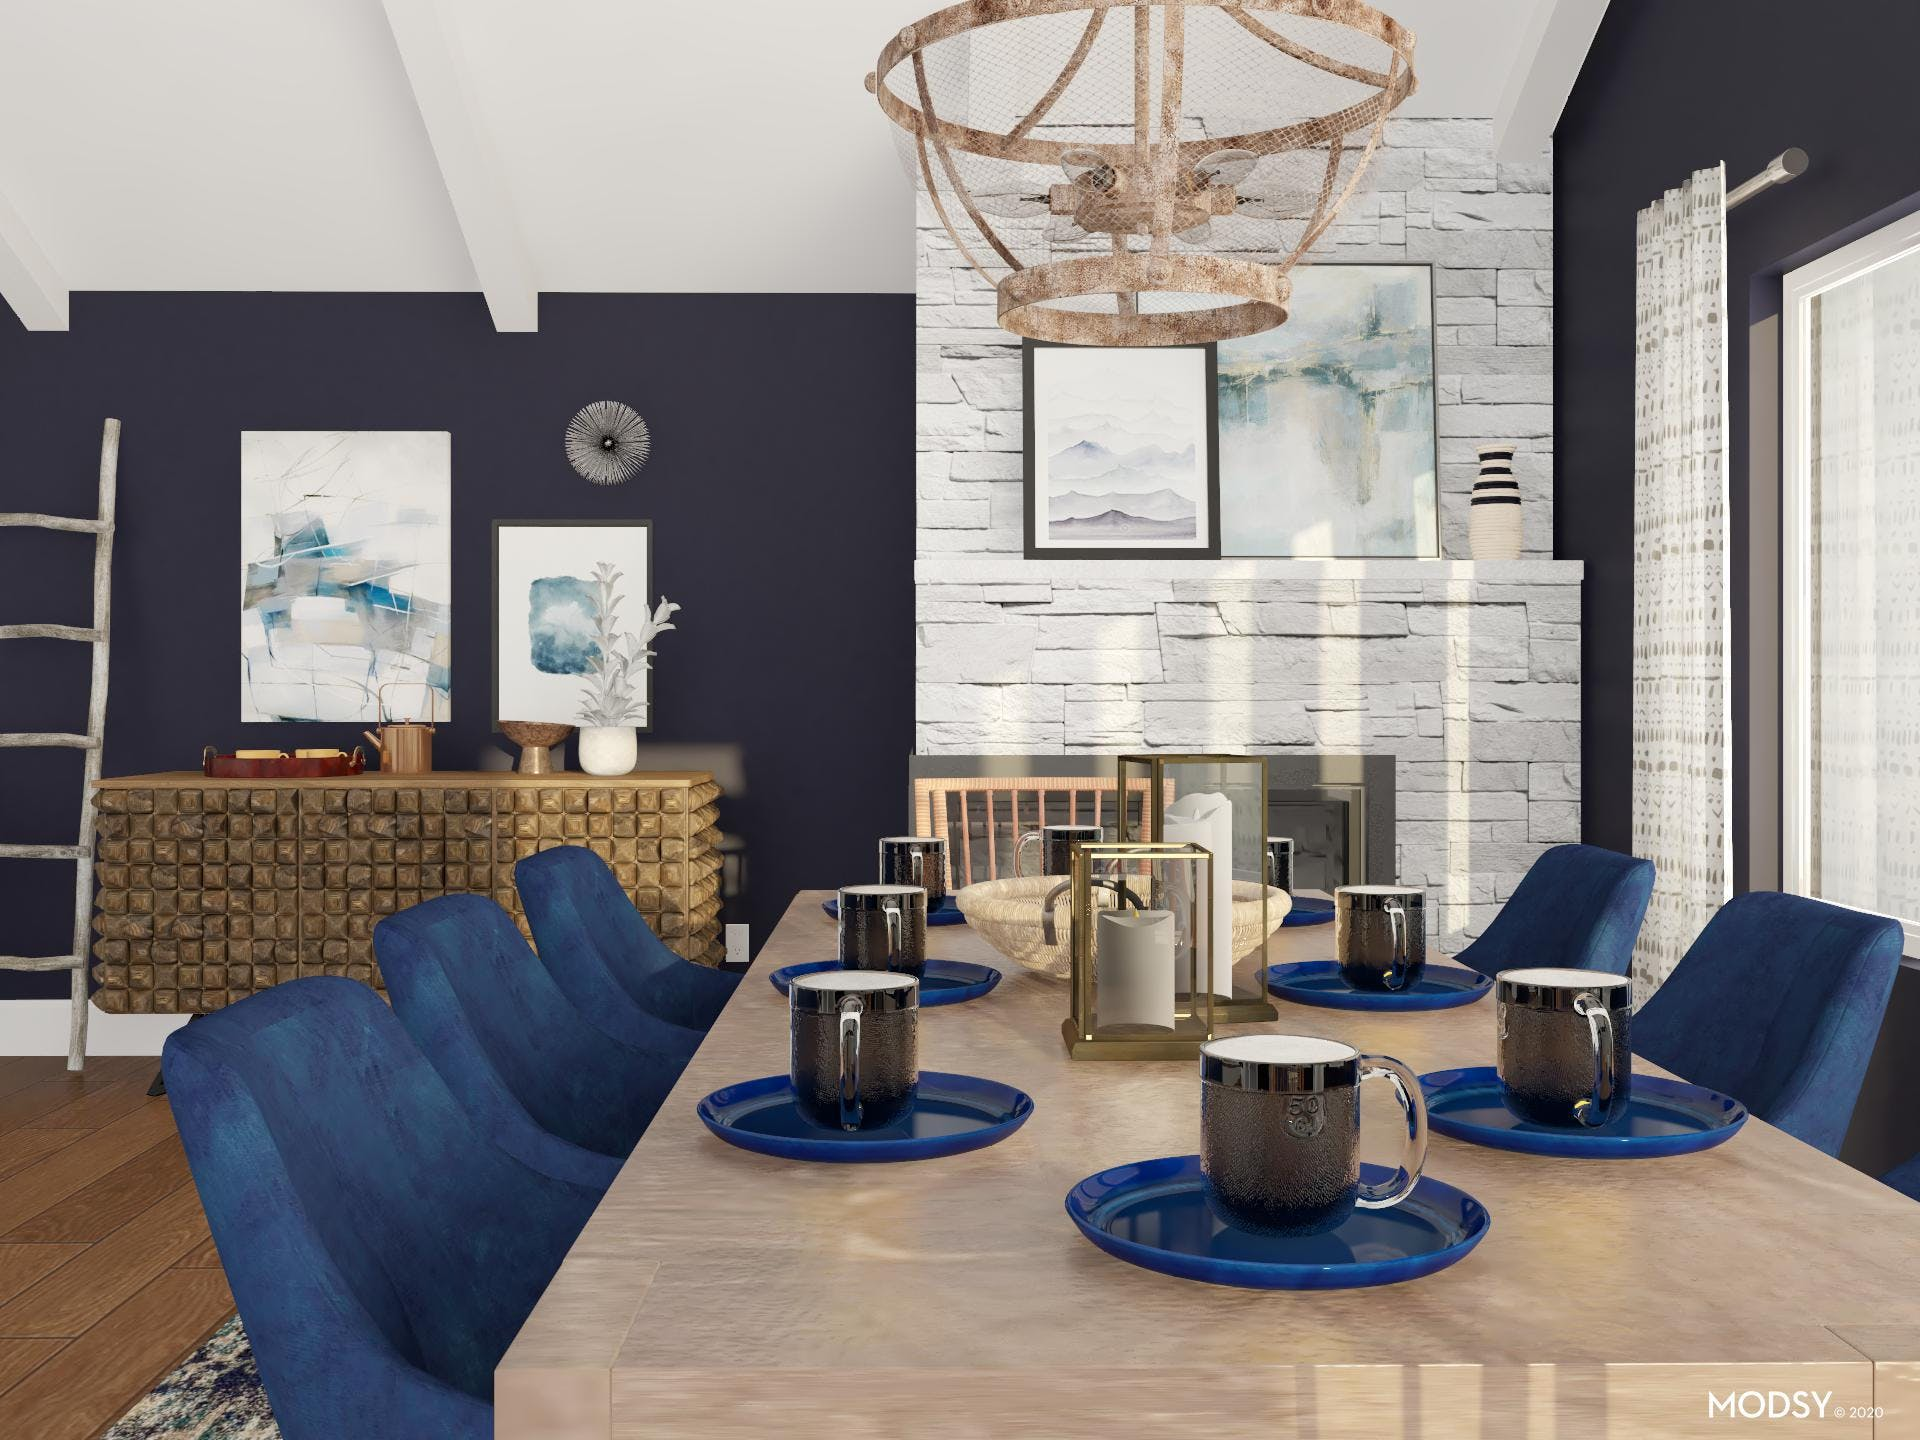 Cozy Dining Room: Eclectic Touch